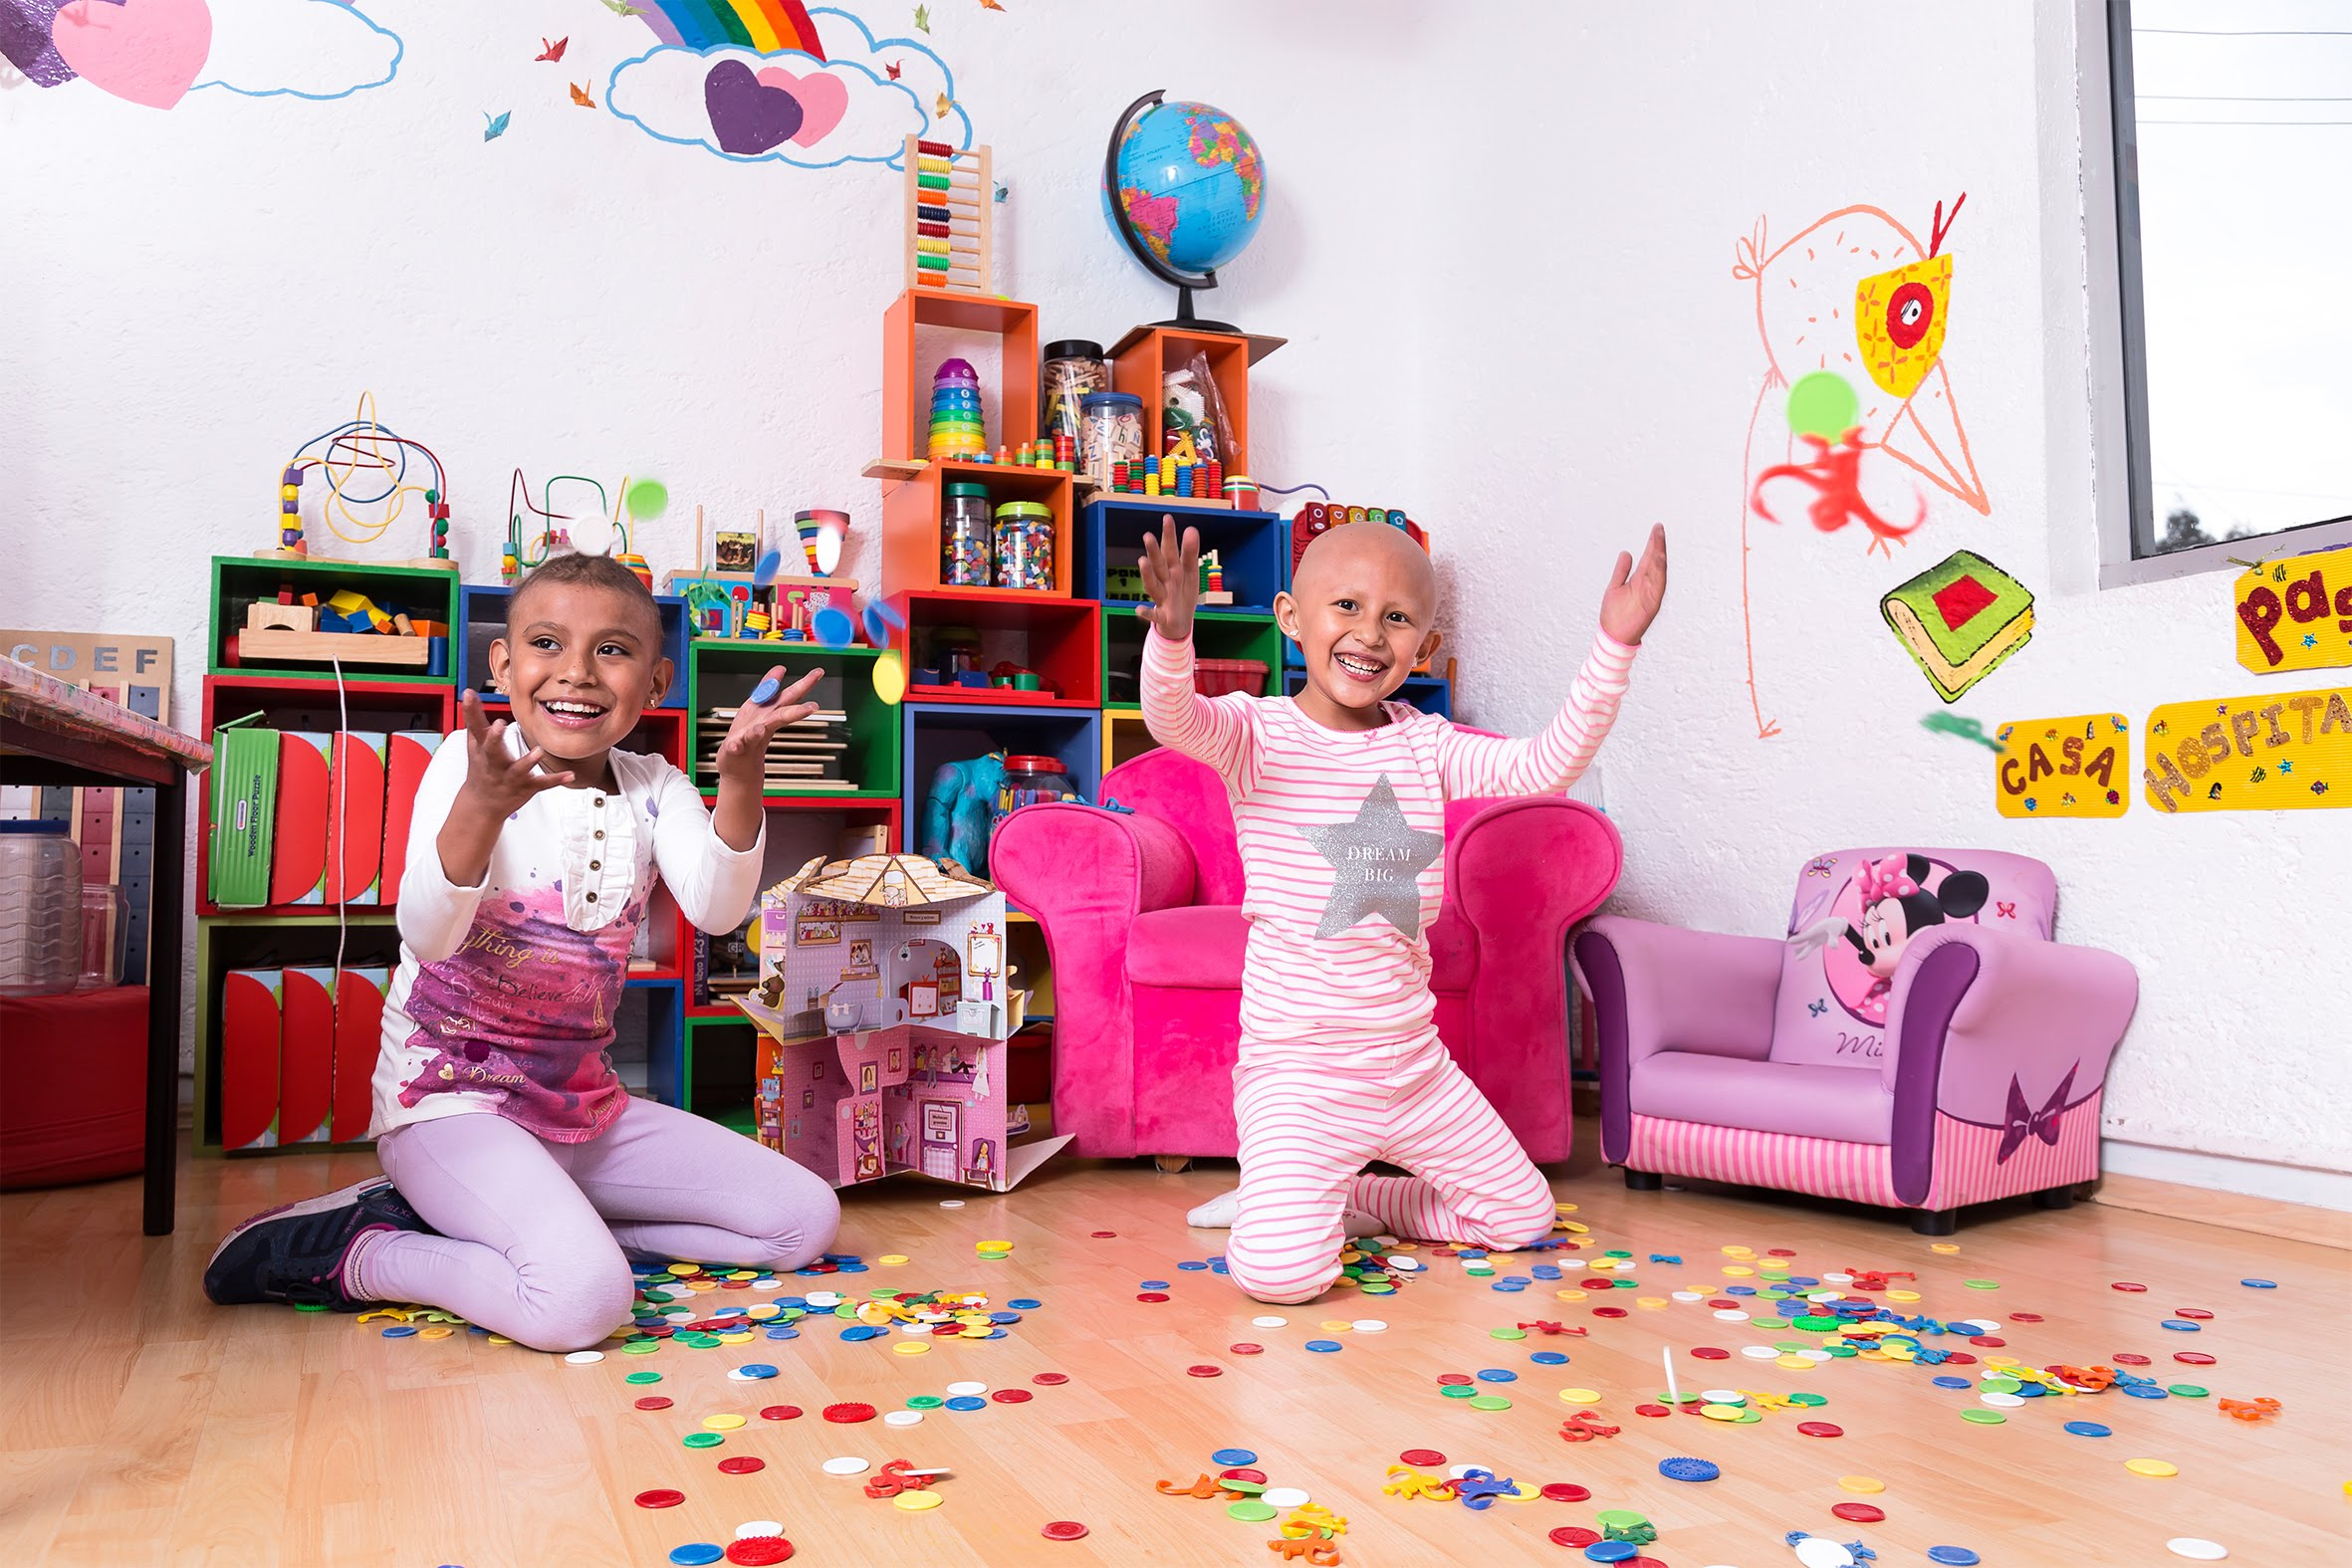 Casa de la Amistad offers free housing and services for children undergoing cancer treatment in Mexico City. (Photos courtesy of Casa de  la Amistad)